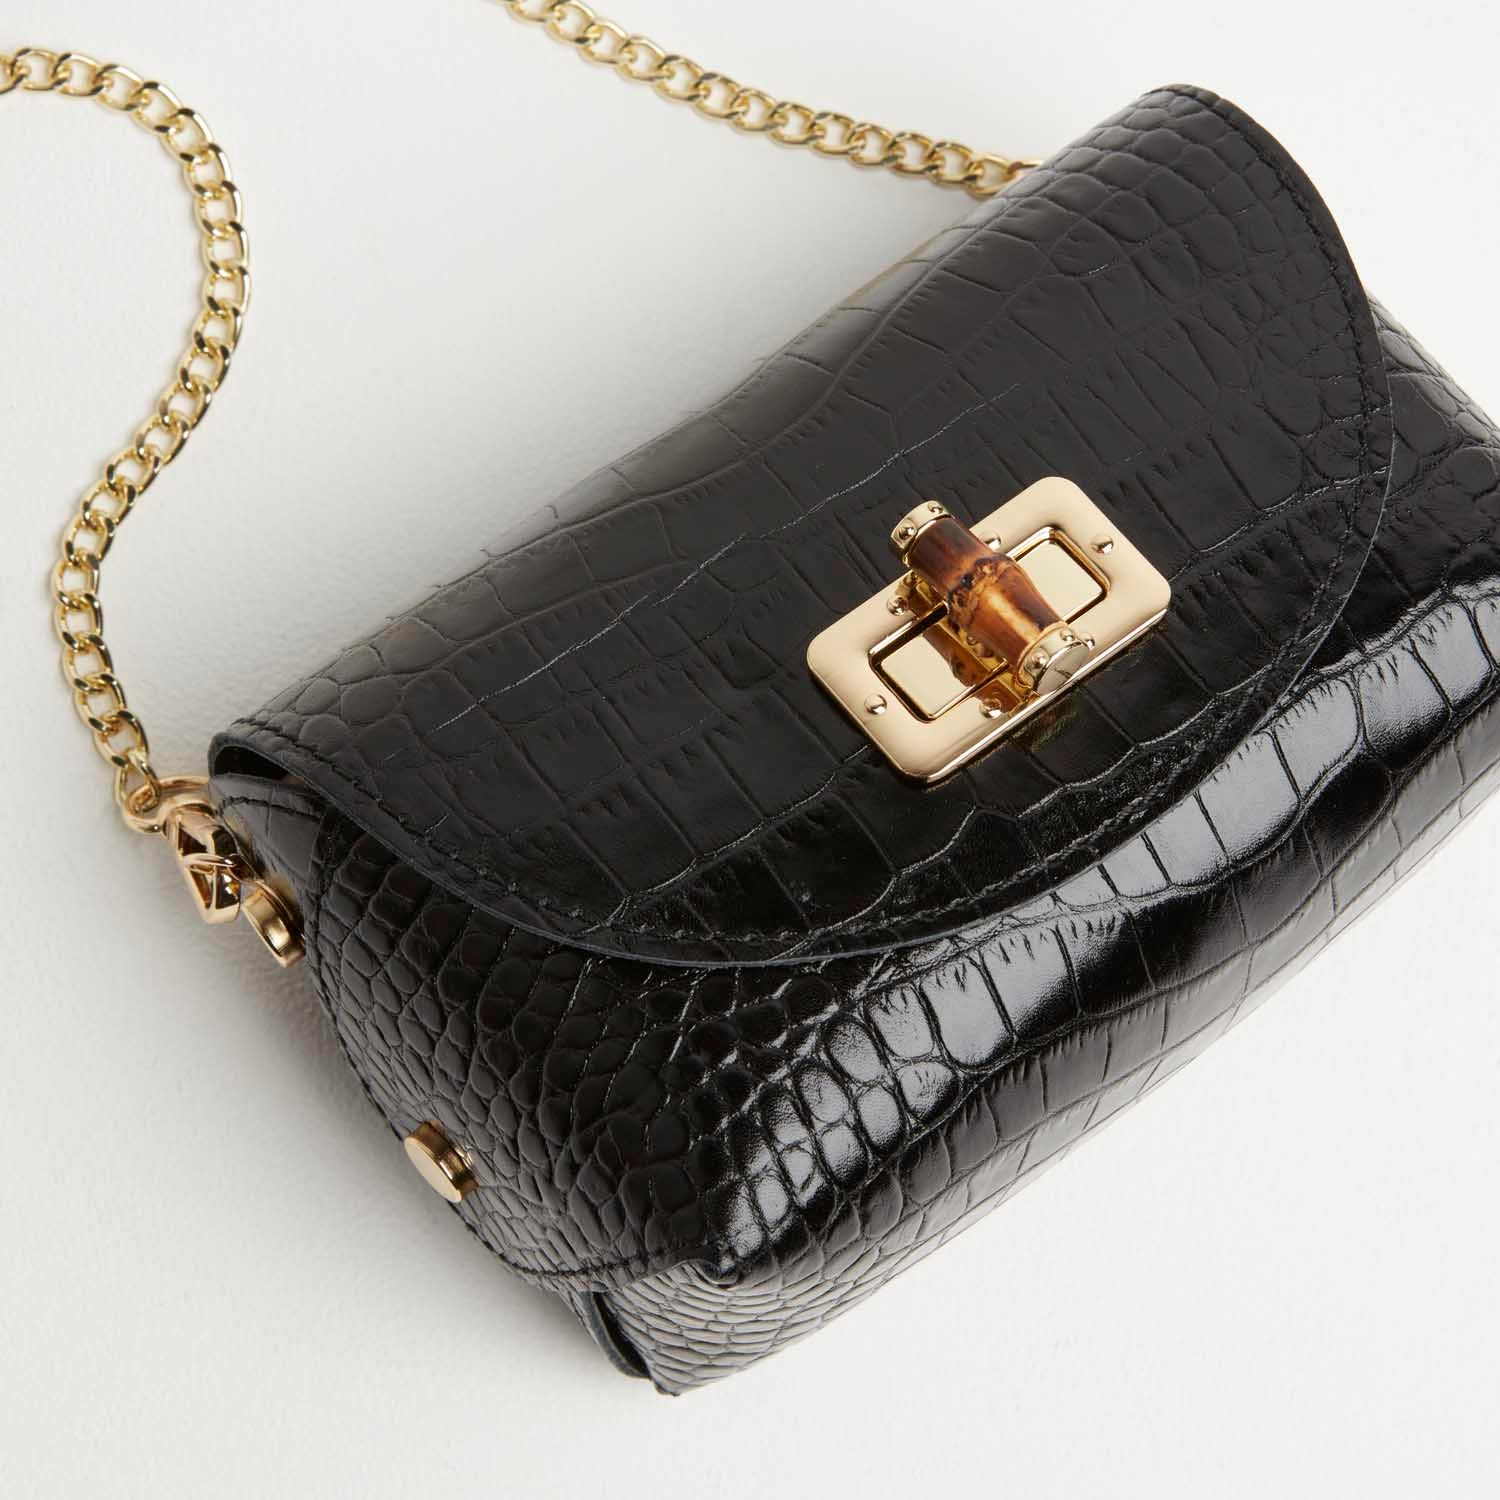 Mini Luna Clutch Bag with Chain Strap